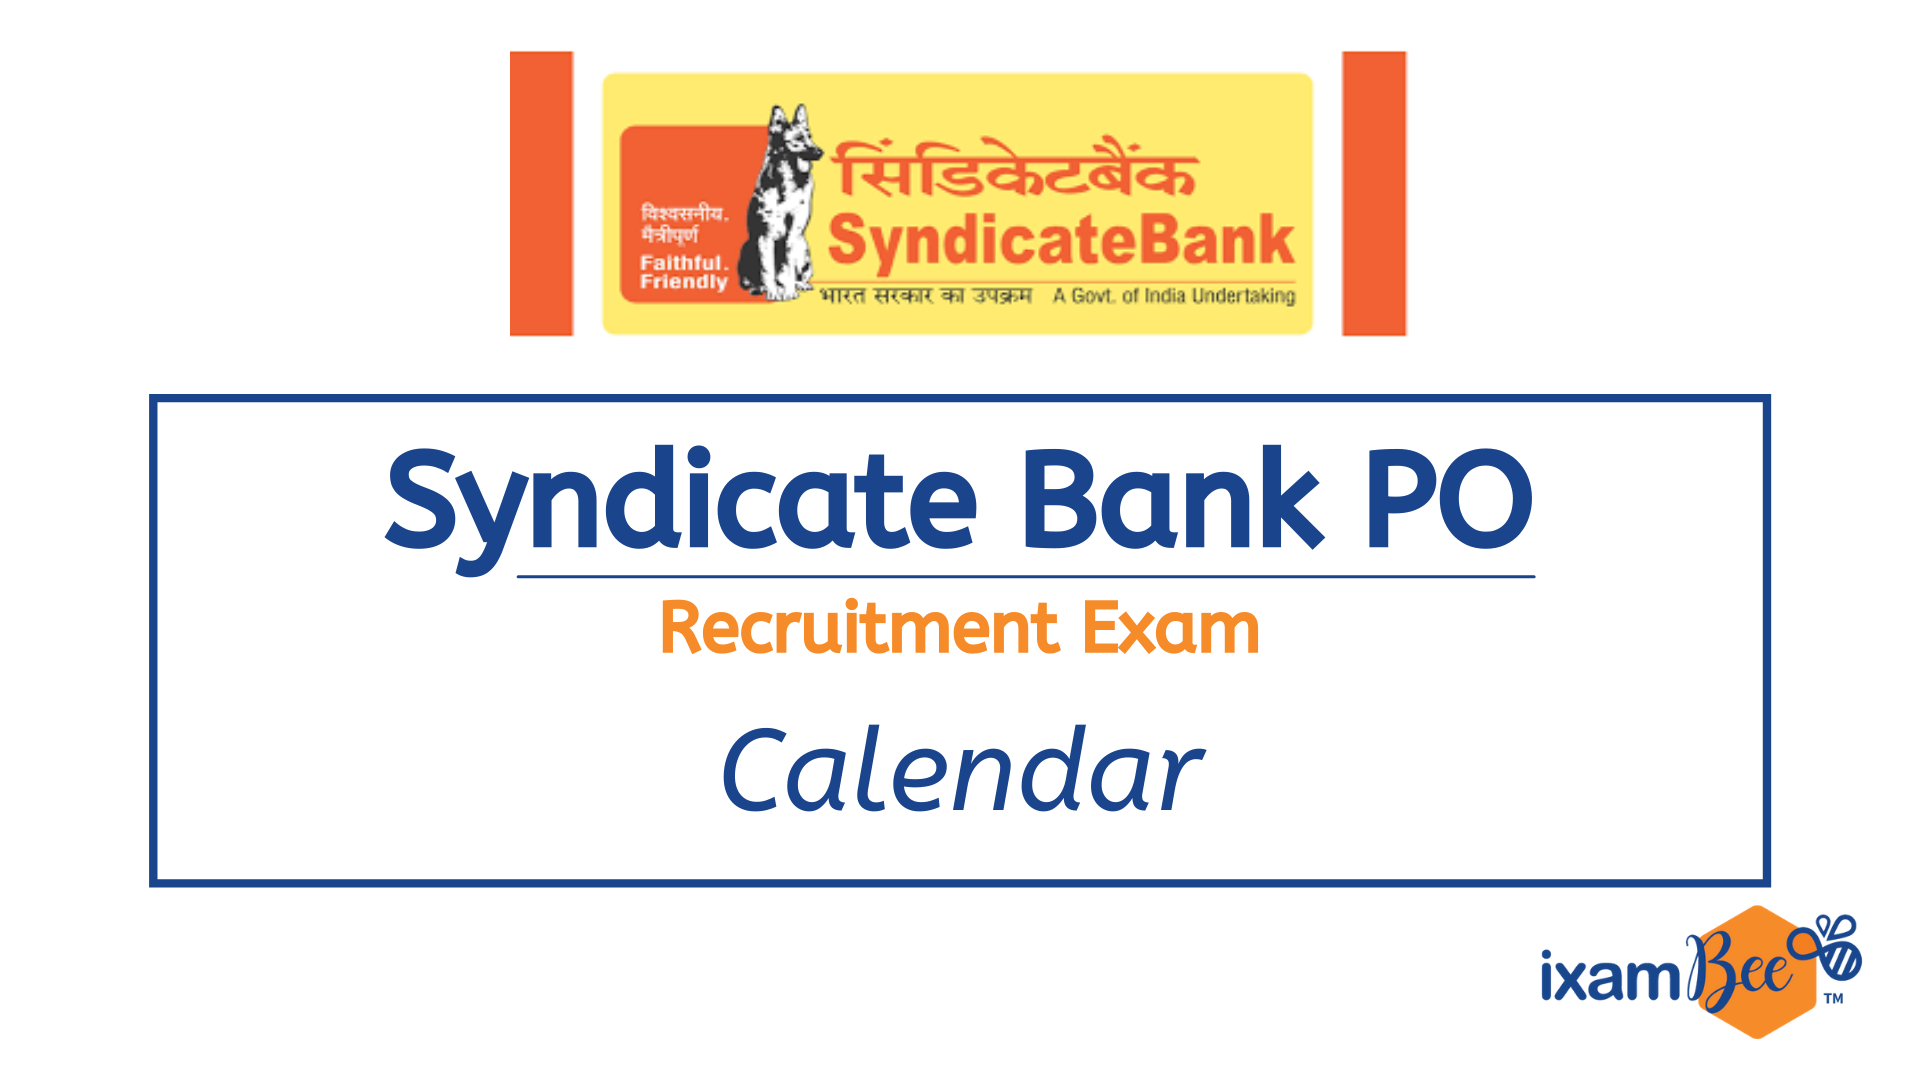 Syndicate Bank PO Recruitment Exam Calendar